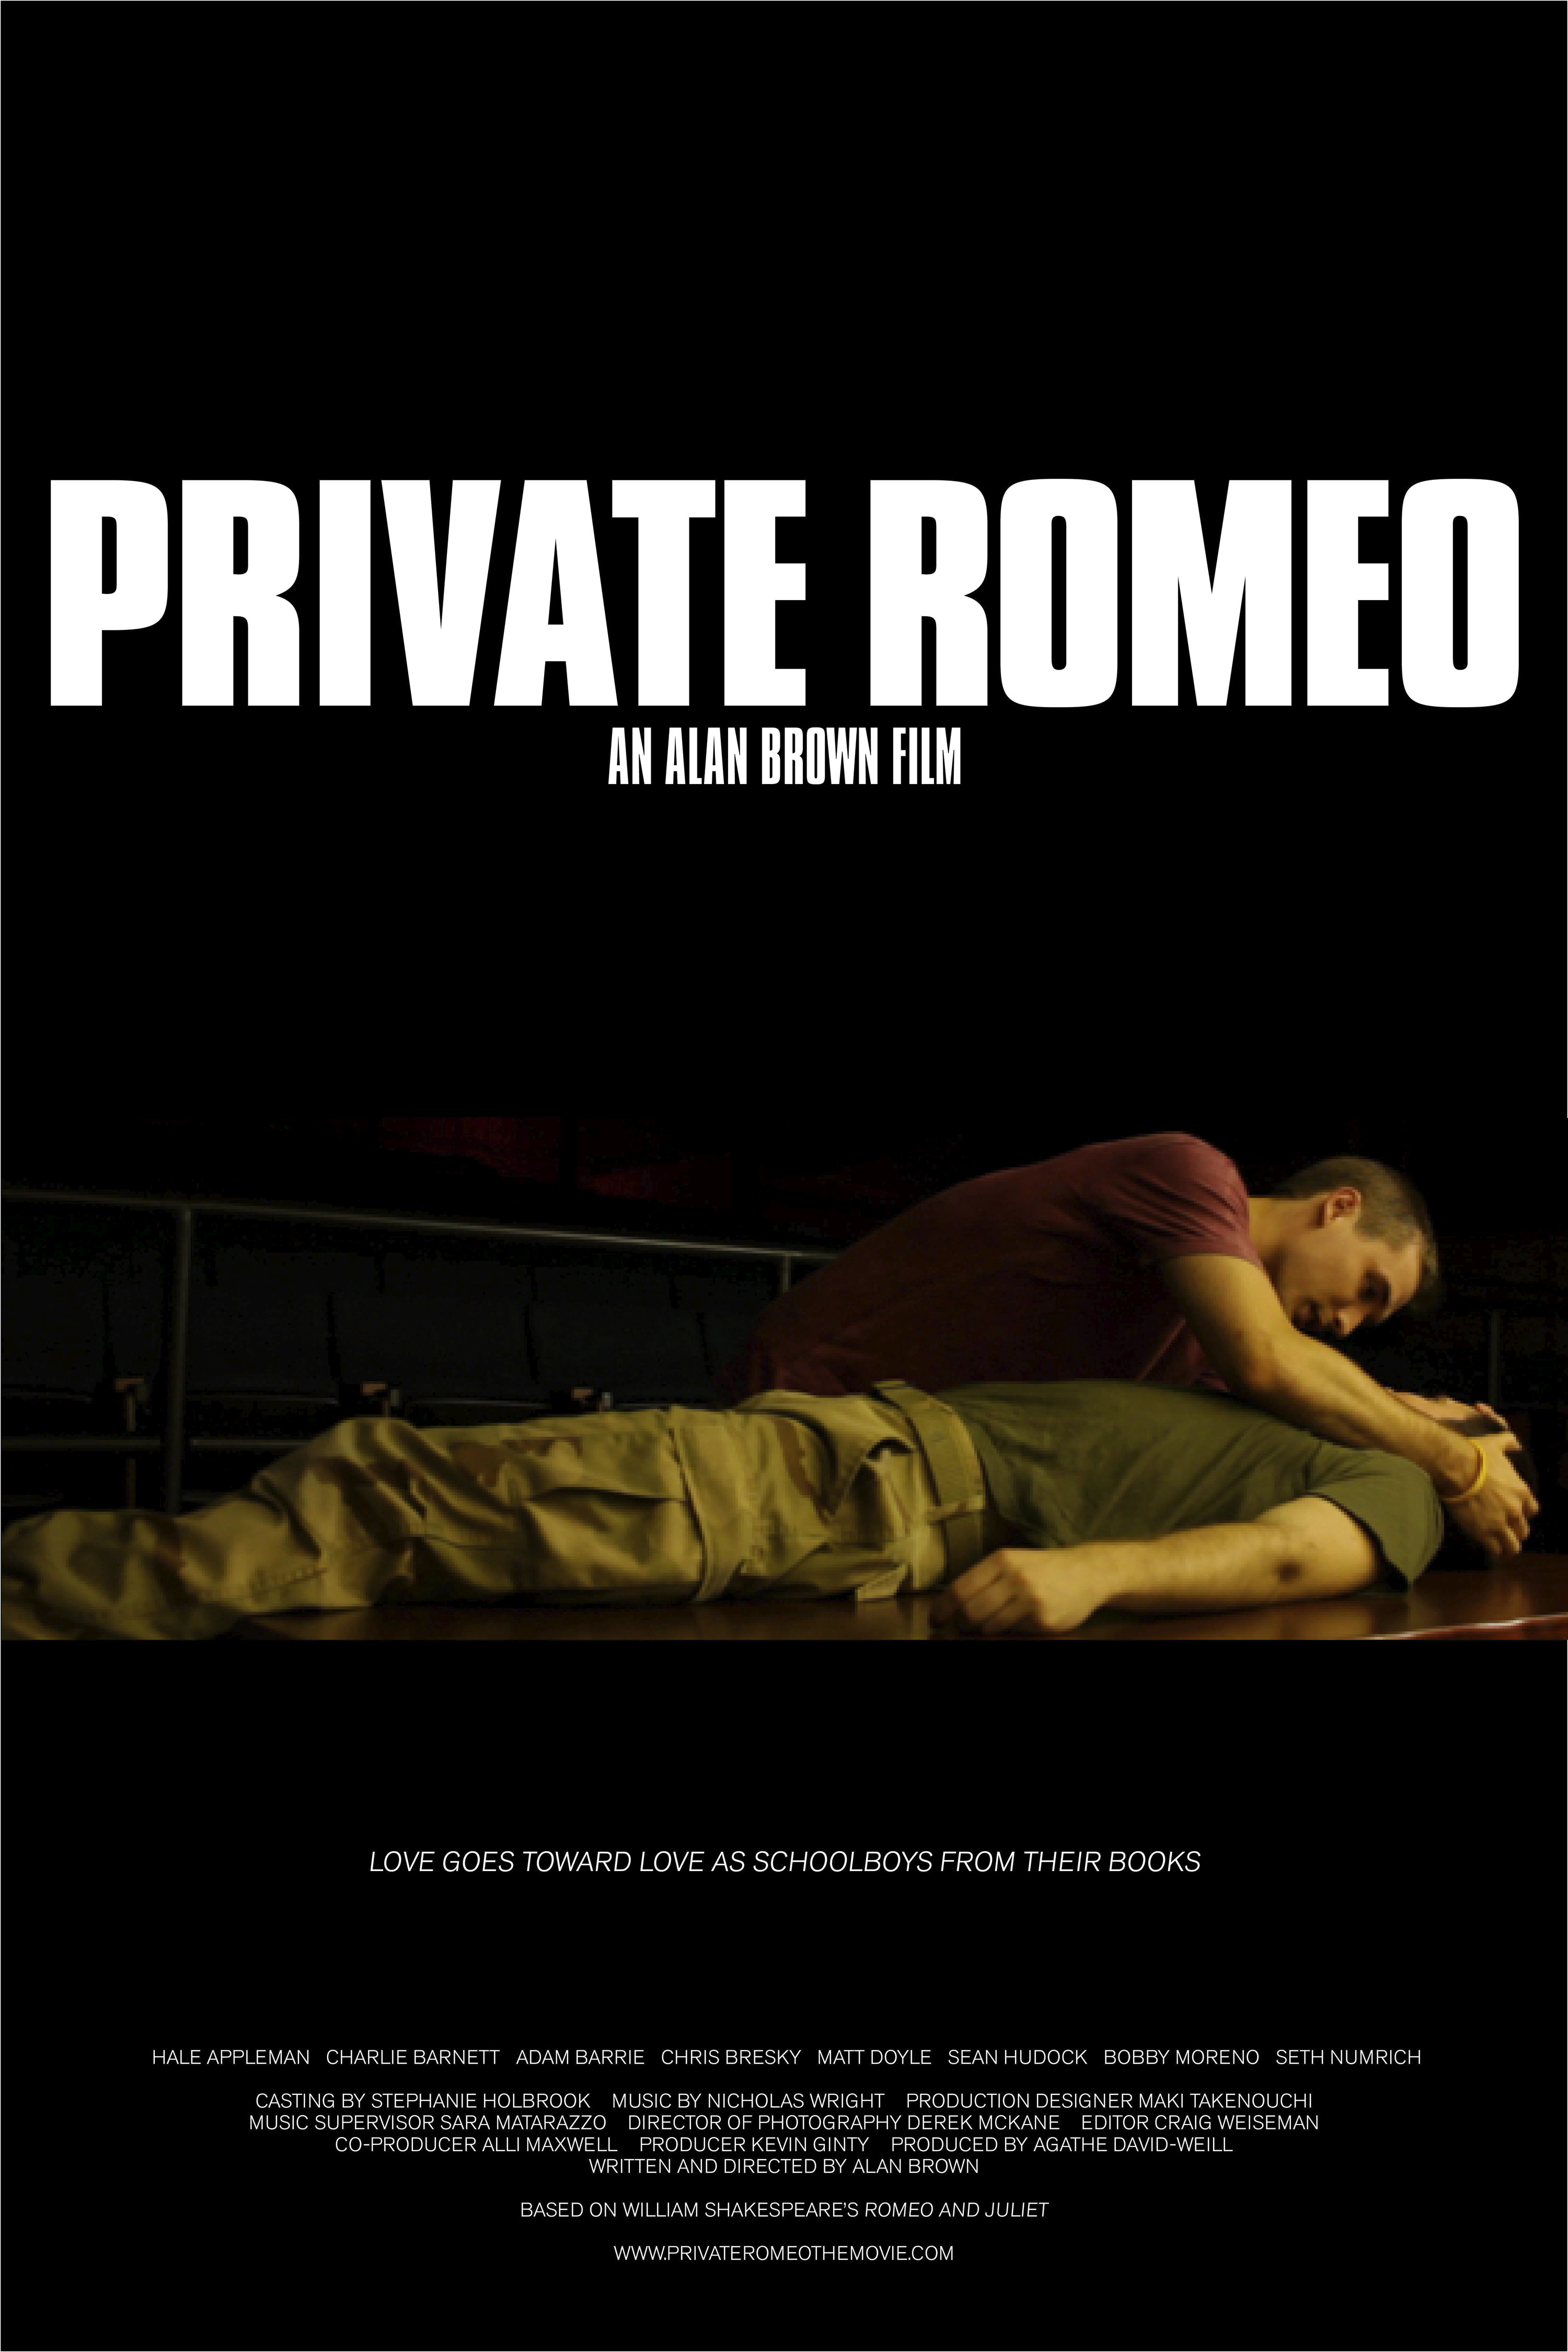 Private Romeo 2011 Imdb